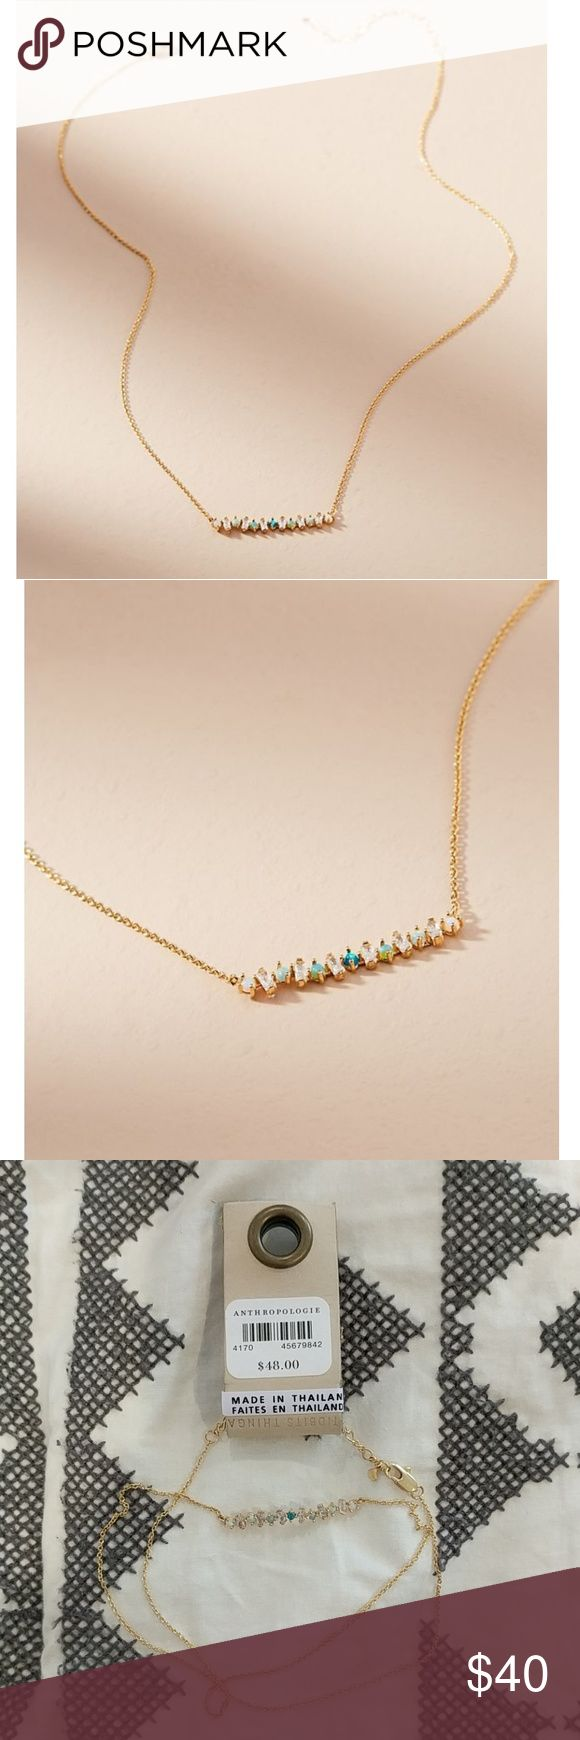 """😍NEW ANTHRO Green crystal necklace! """"Margaret Necklace""""- beautiful crystal necklace with various green, opal, and clear shades. So pretty and dainty! NEW (and selling online for more) Anthropologie Jewelry Necklaces"""